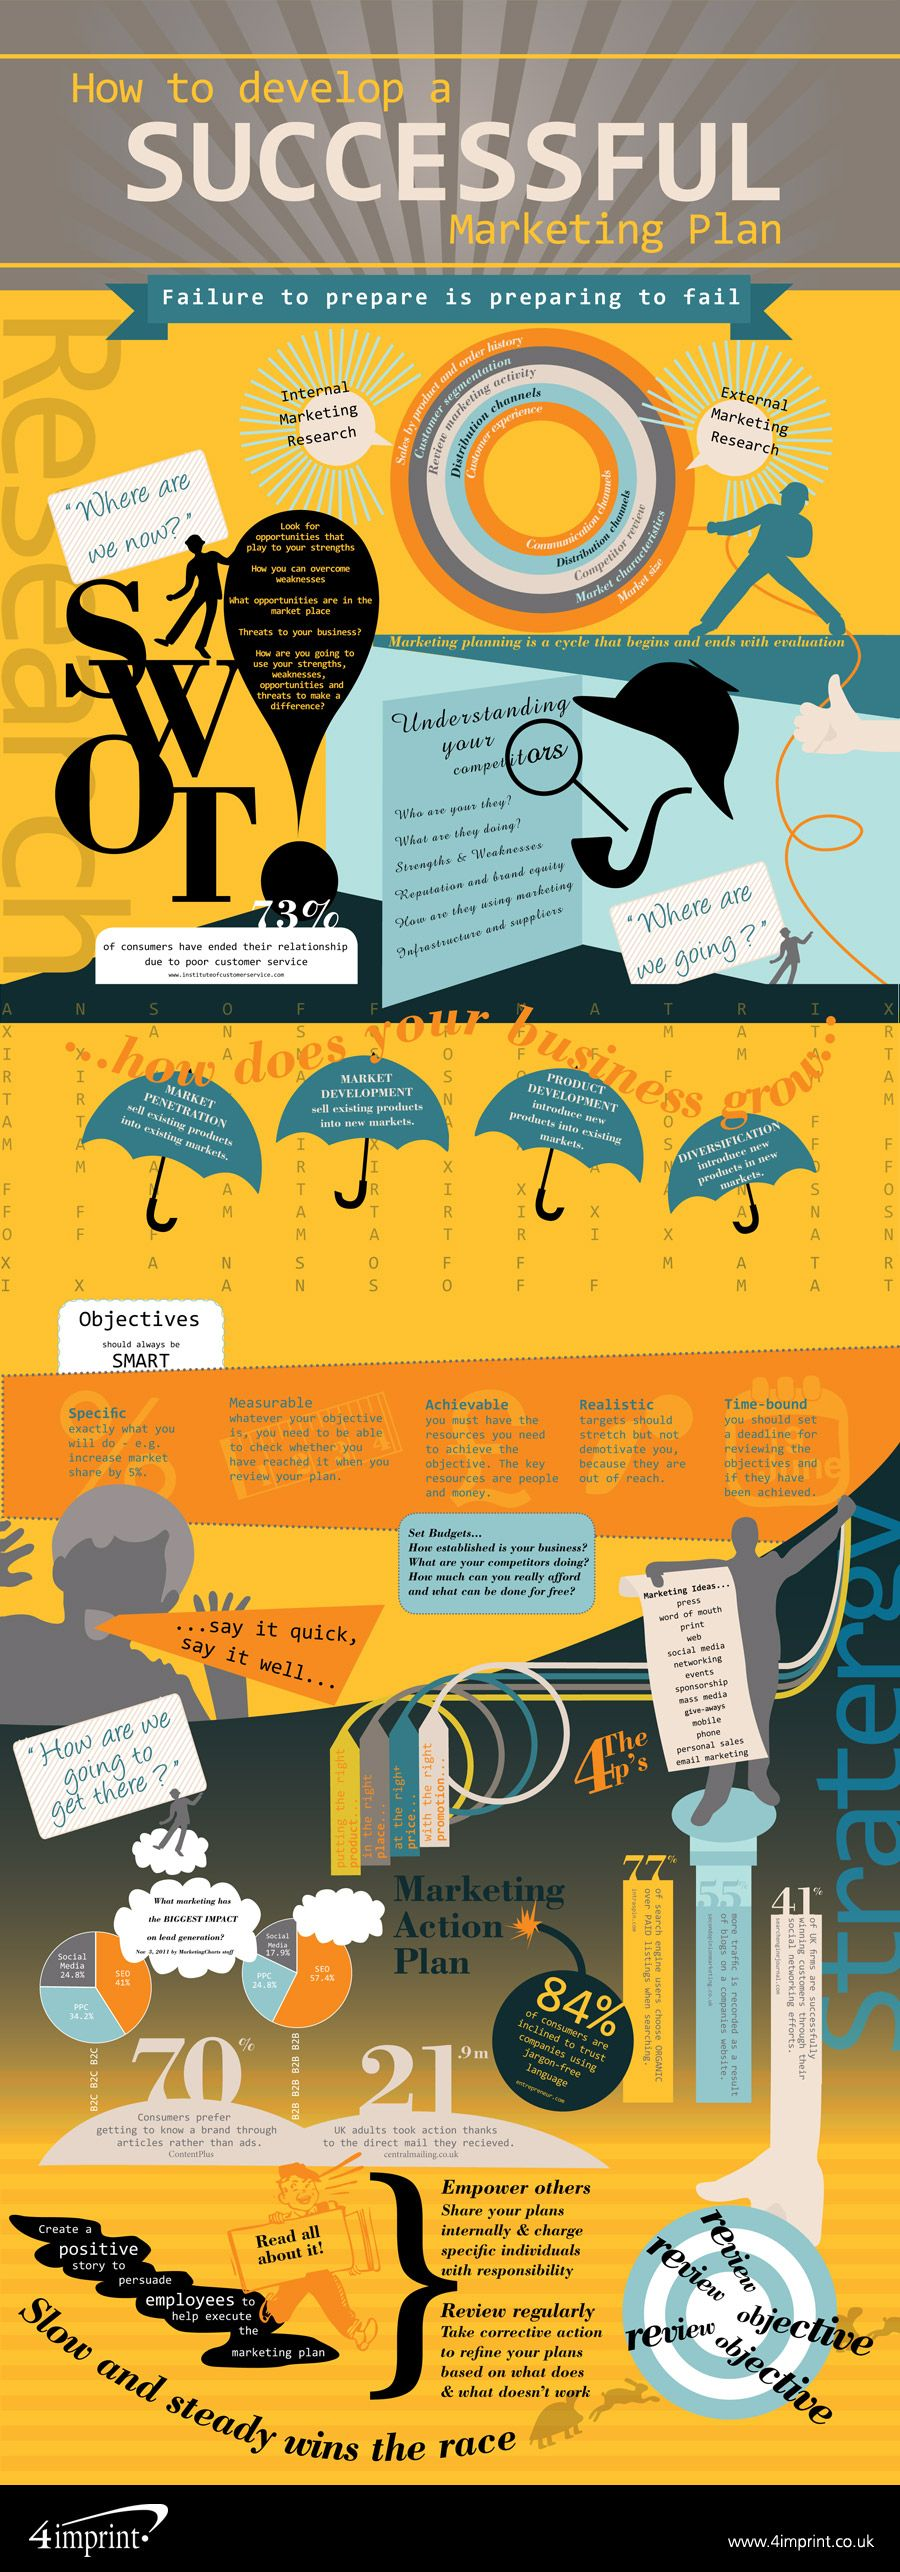 Failure to plan, truly is planning to fail | #Marketing #Infographic #MarketingPlan